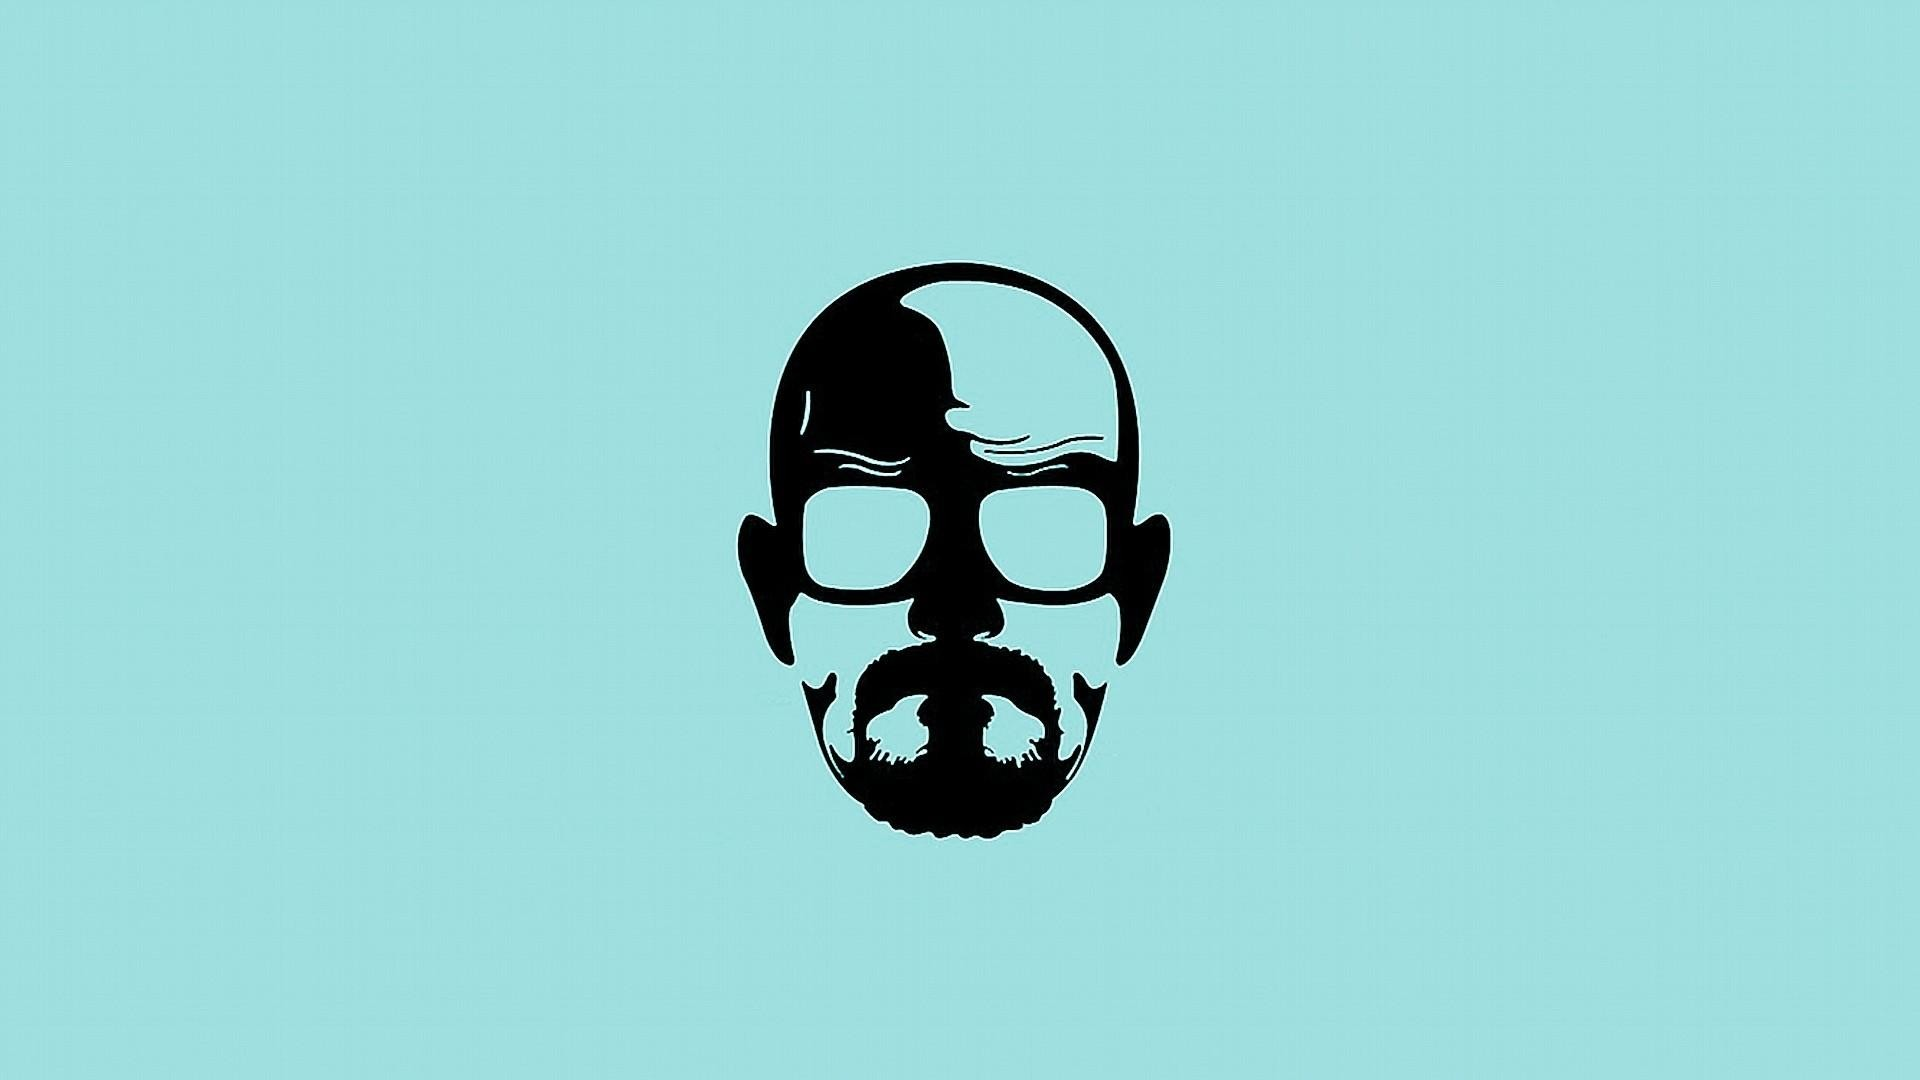 1920x1080 Blue minimalistic breaking bad walter white simple background wallpaper